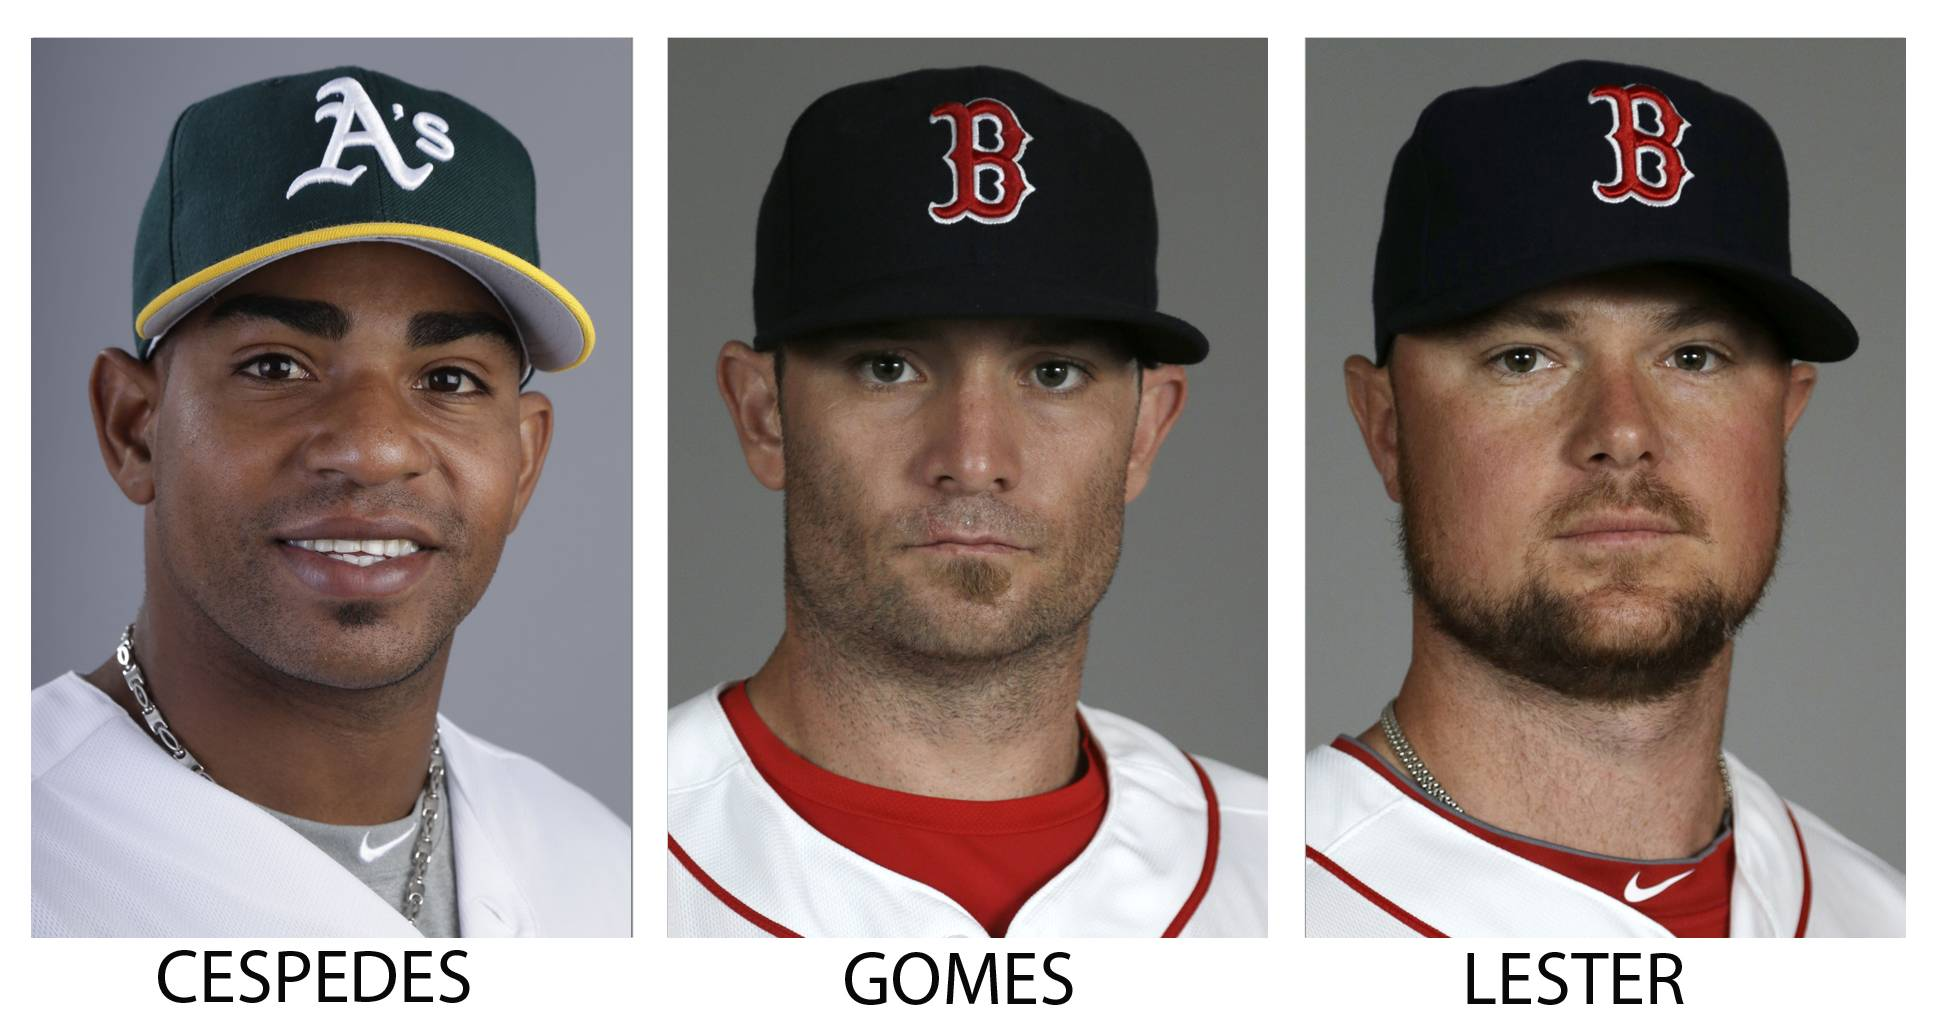 The Oakland Athletics traded Yoenis Cespedes to the Boston Red Sox for Jonny Gomes, middle, and Jon Lester.